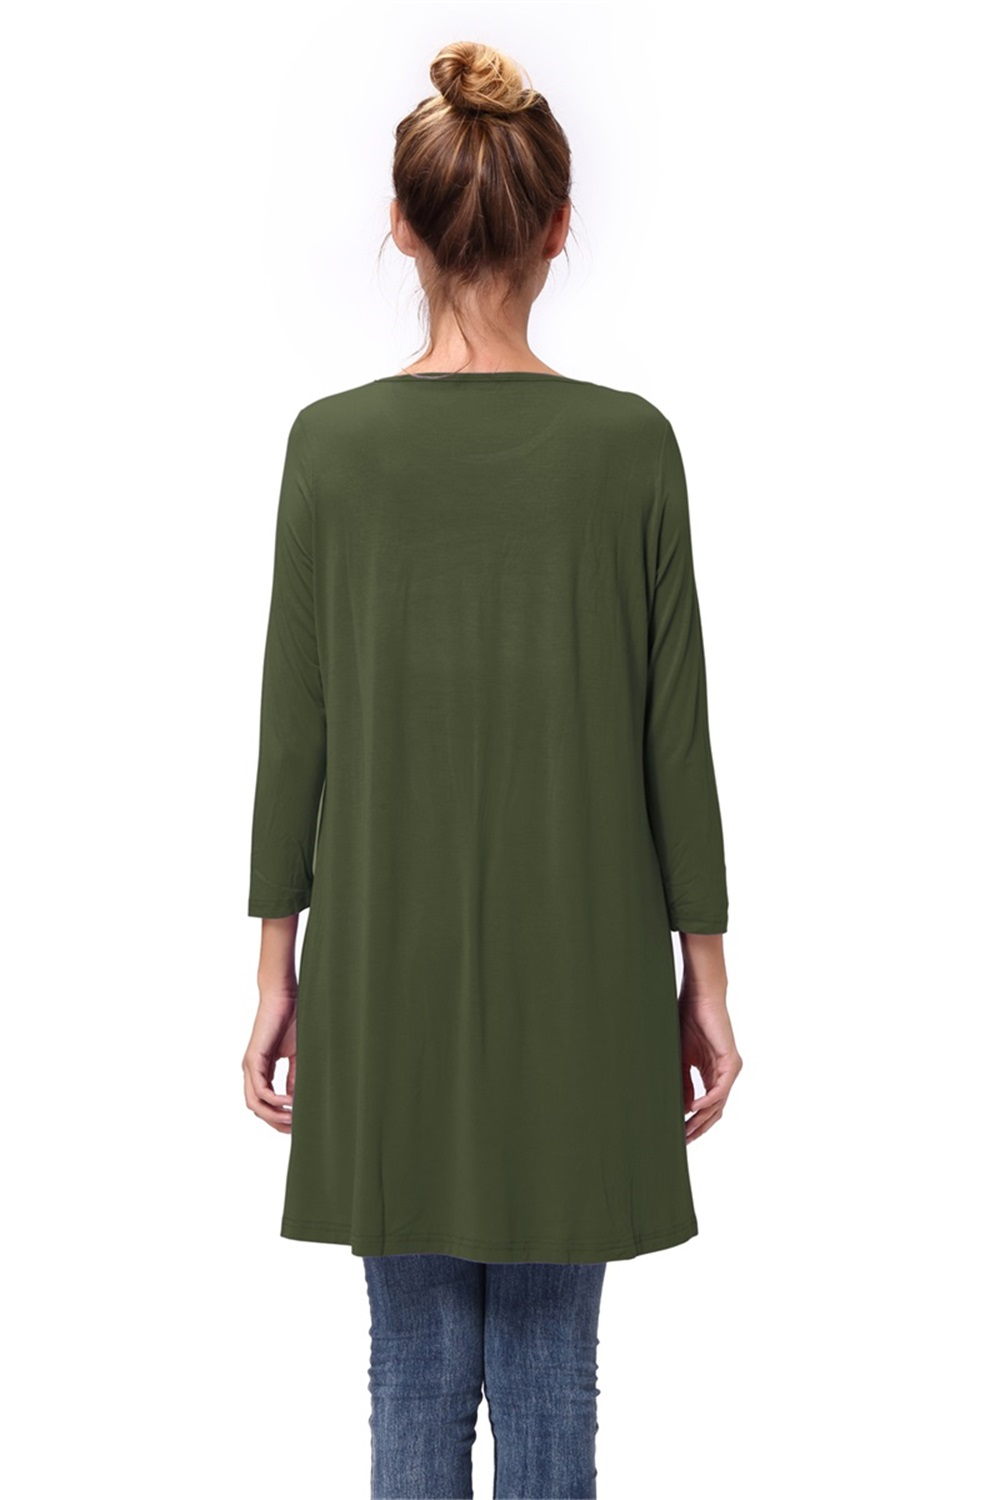 Women-039-s-Long-Tunic-Top-3-4-Sleeve-Dolman-Boat-Neck-USA-Dress-S-M-L-1X-2X-3X-PLUS thumbnail 5